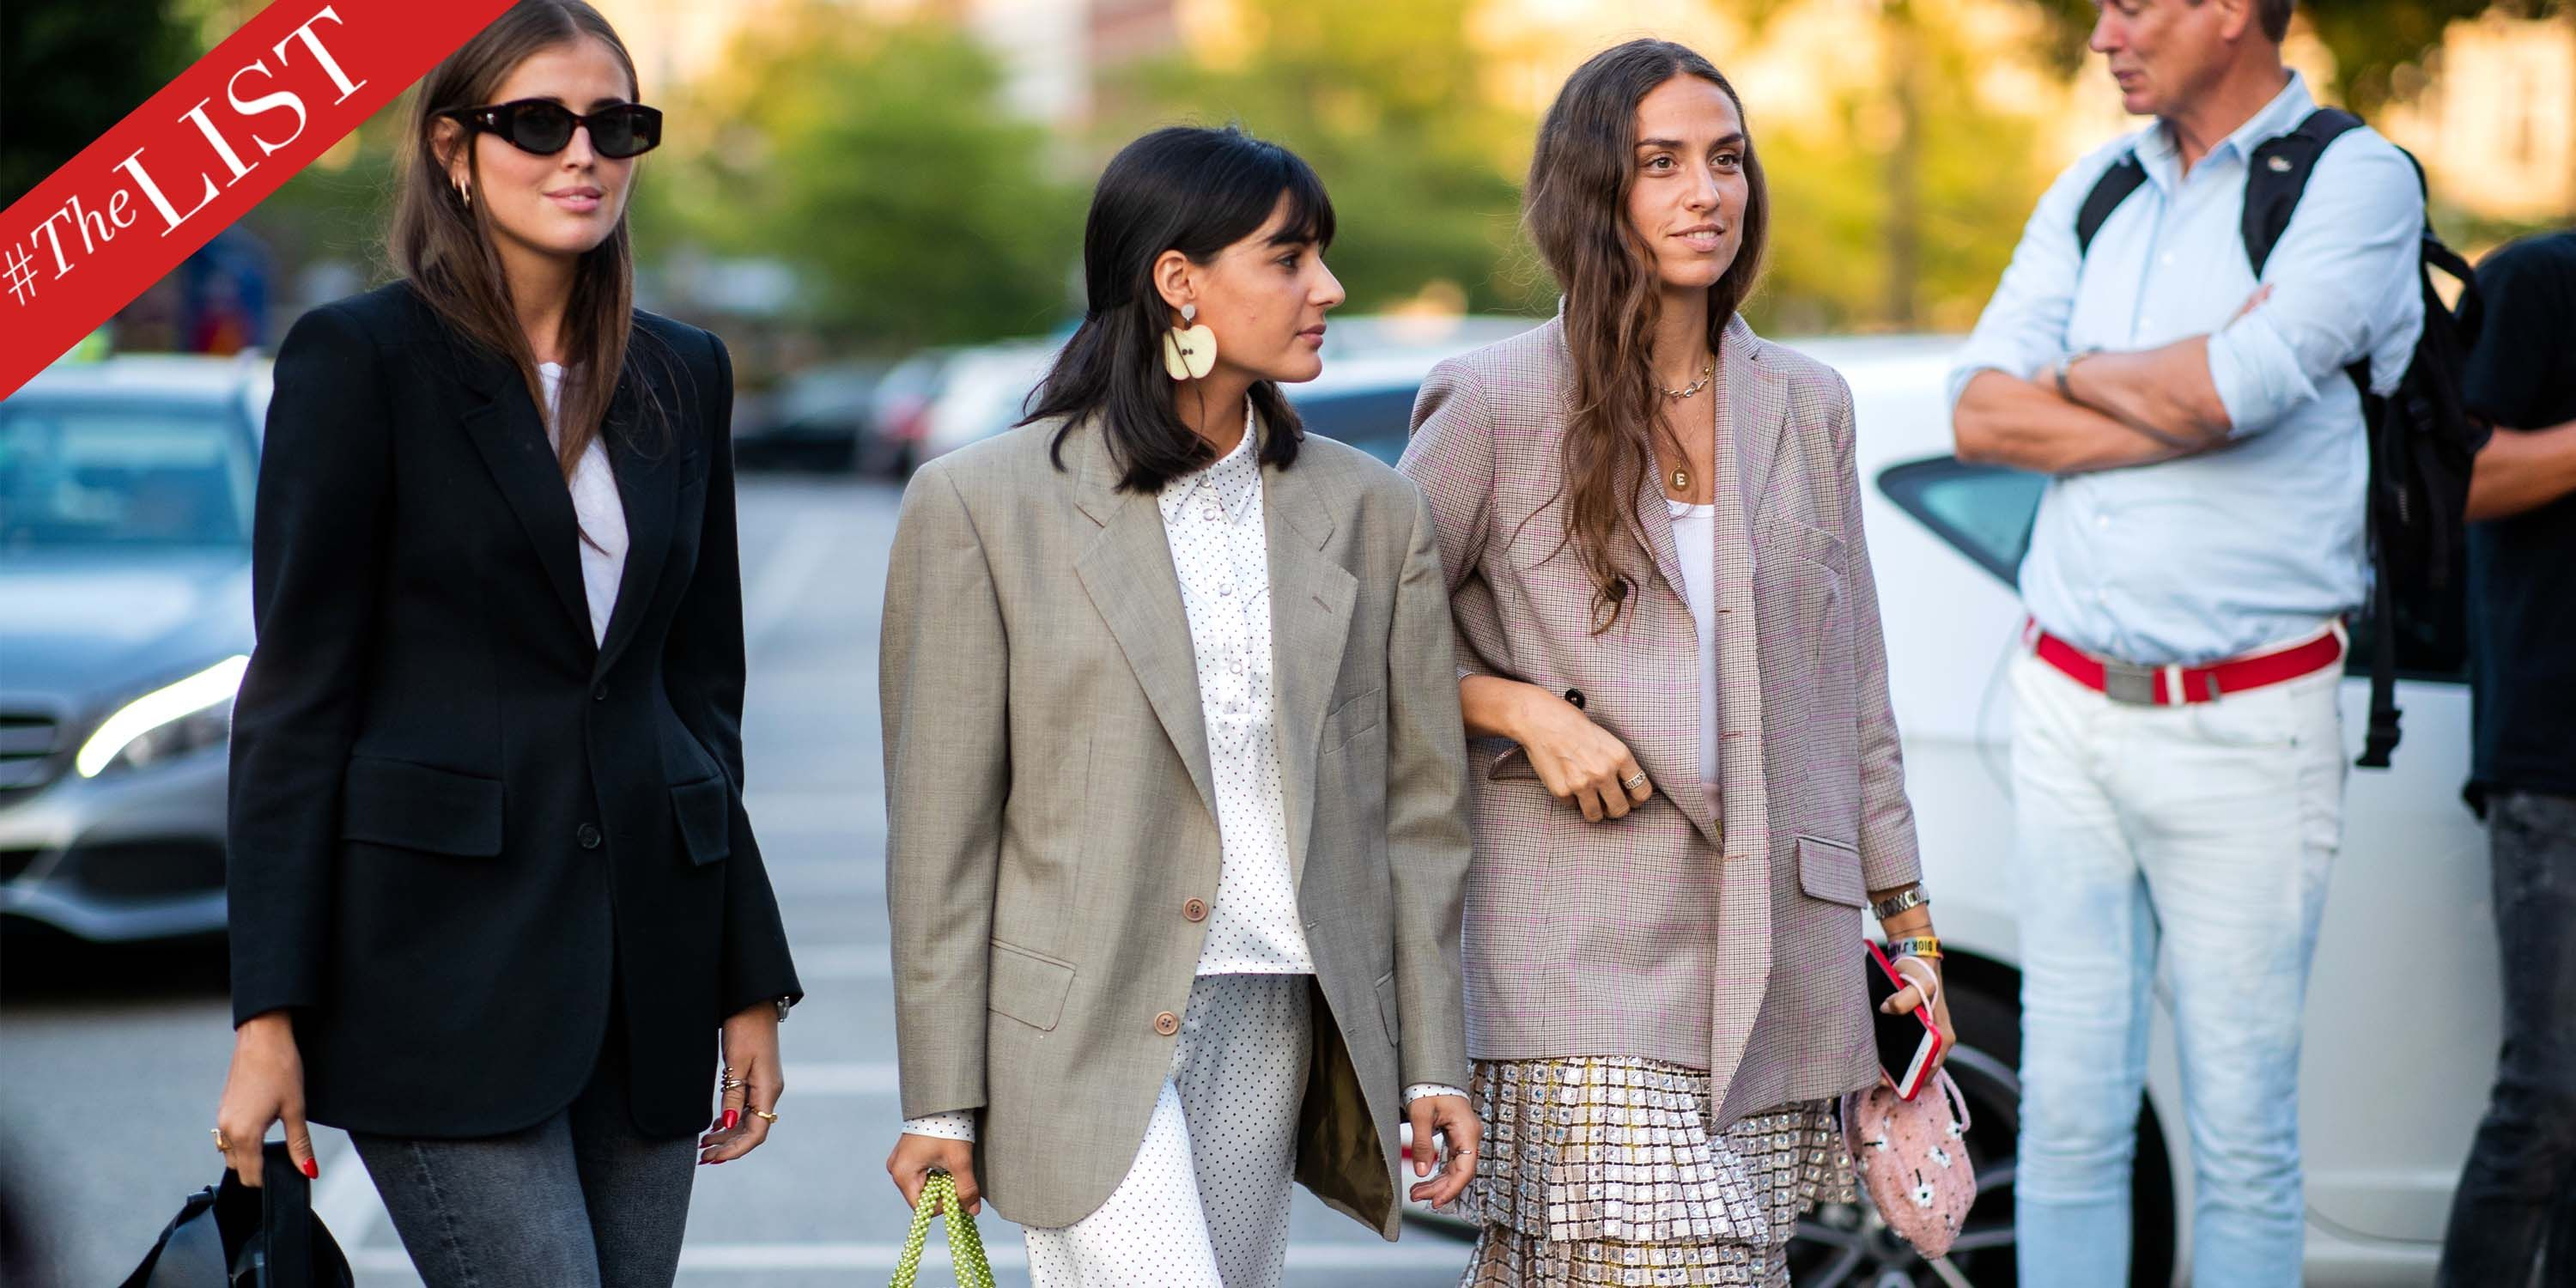 Fall Outfit Ideas for Work - What to Wear To Work in Fall 8879b97fe94